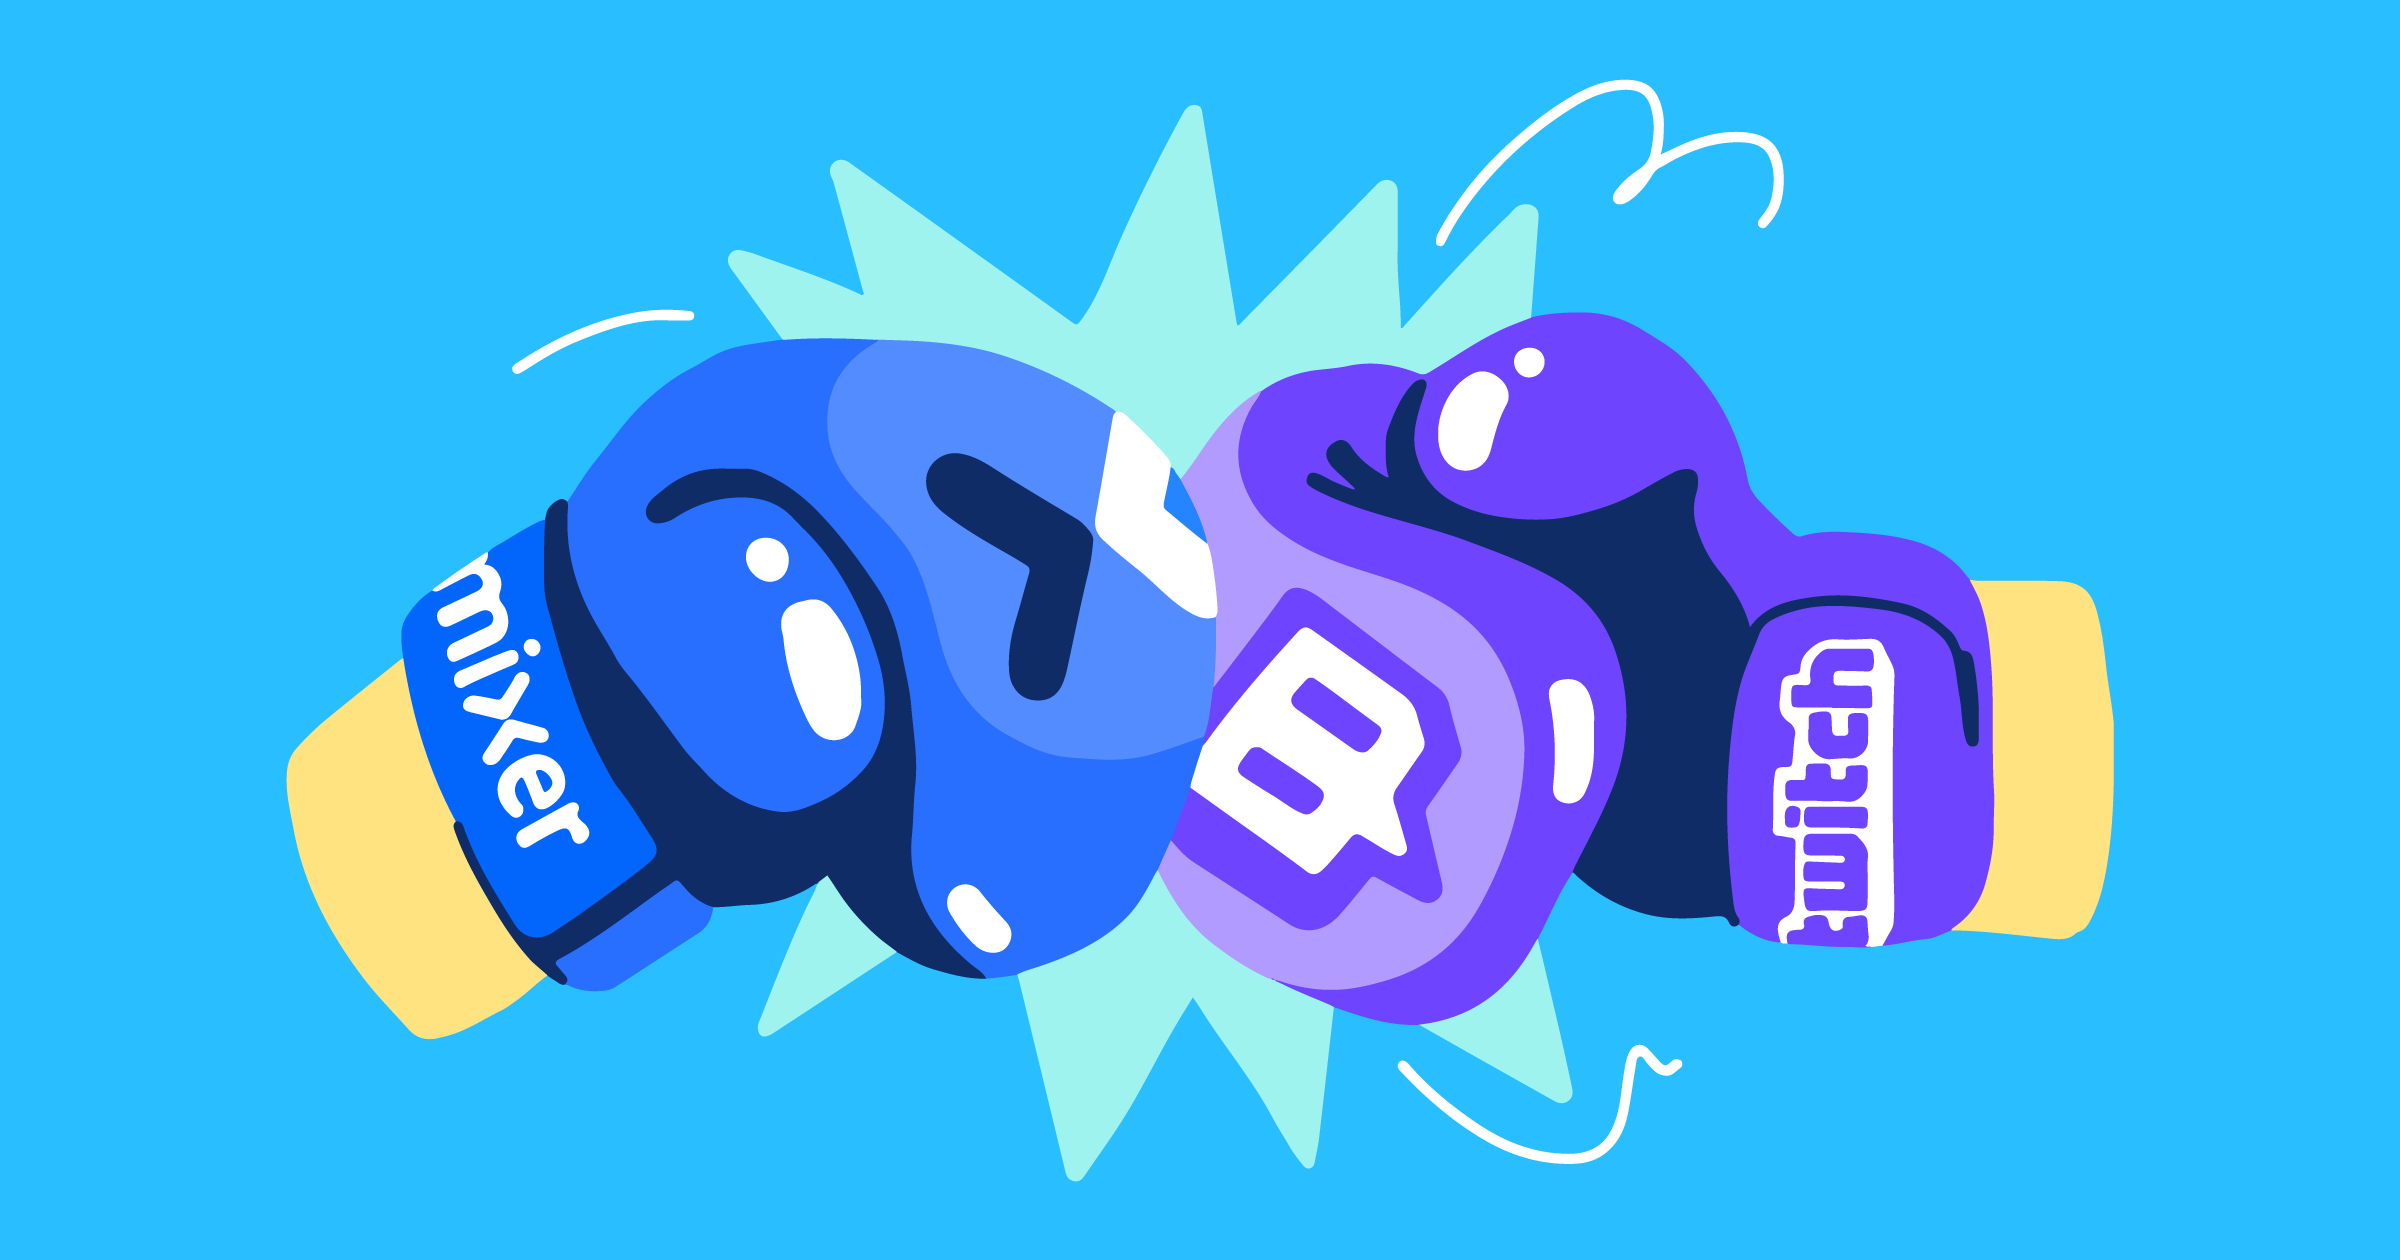 Mixer vs. Twitch: What to choose for streaming